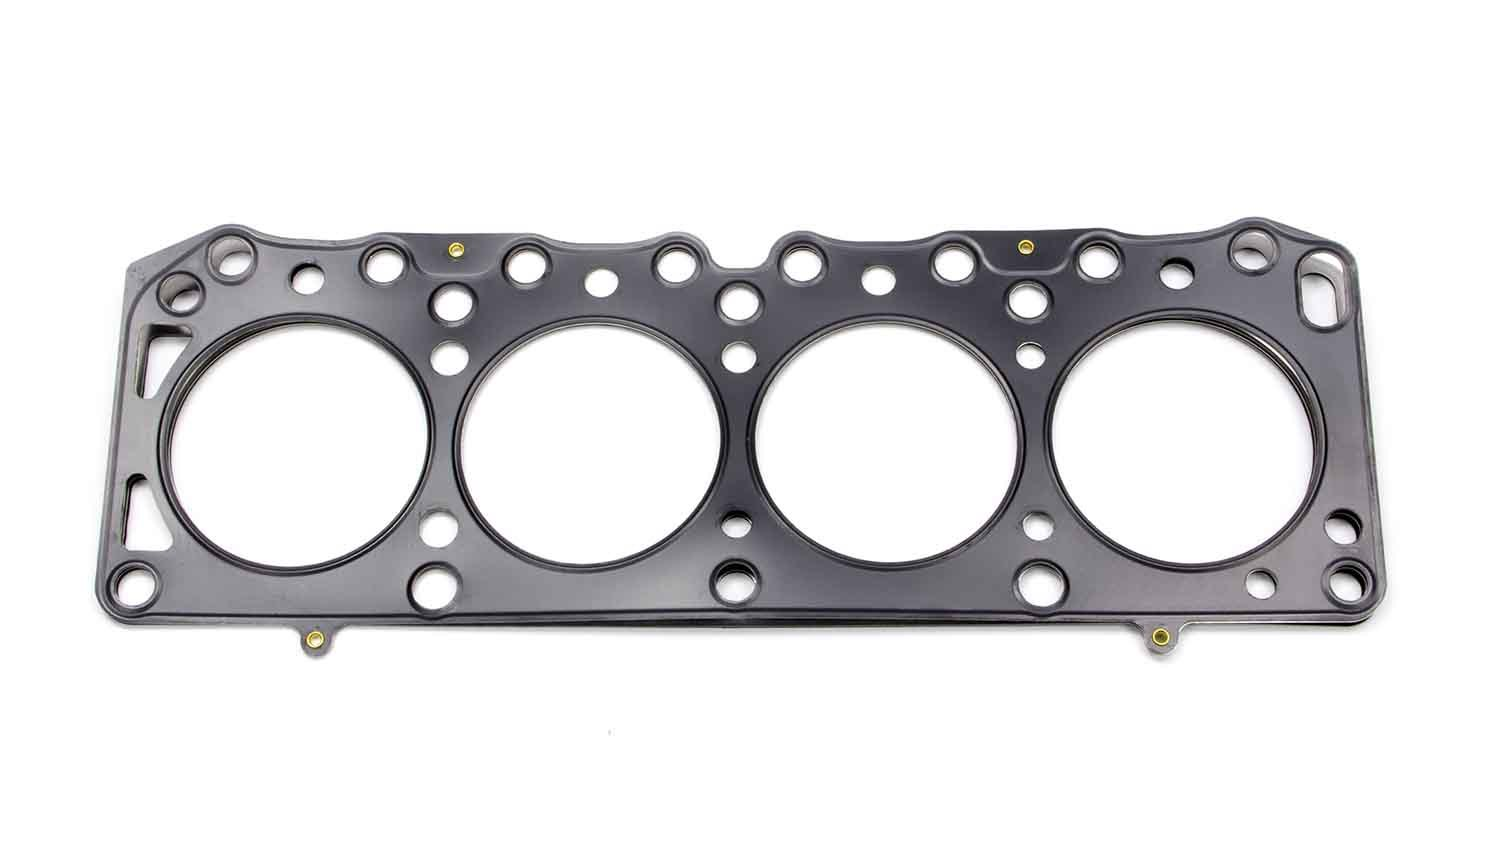 Cometic Gaskets C4140-040 Cylinder Head Gasket, 84.0 mm Bore, 0.040 in Compression Thickness, Multi-Layered Steel, Cosworth / Ford / Lotus 4-Cylinder, Each